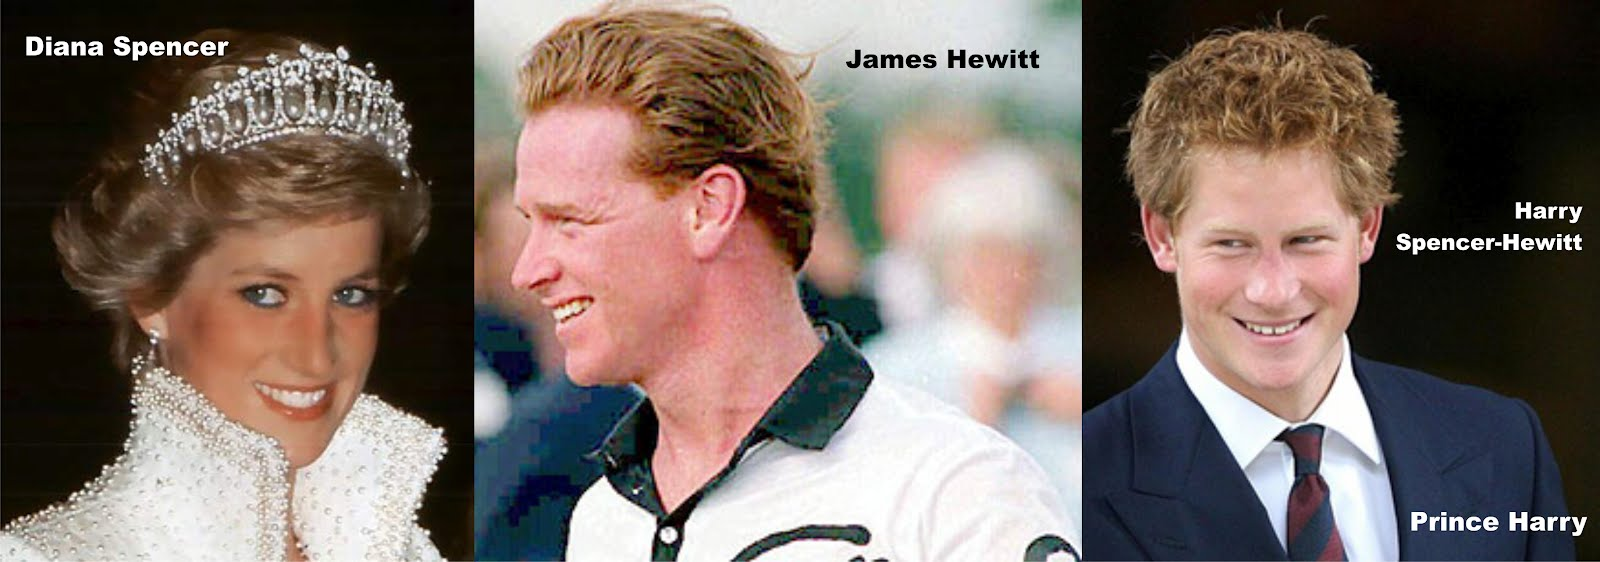 Picture: Diana Spencer & James Hewitt & Prince Harry Spencer-Hewitt.